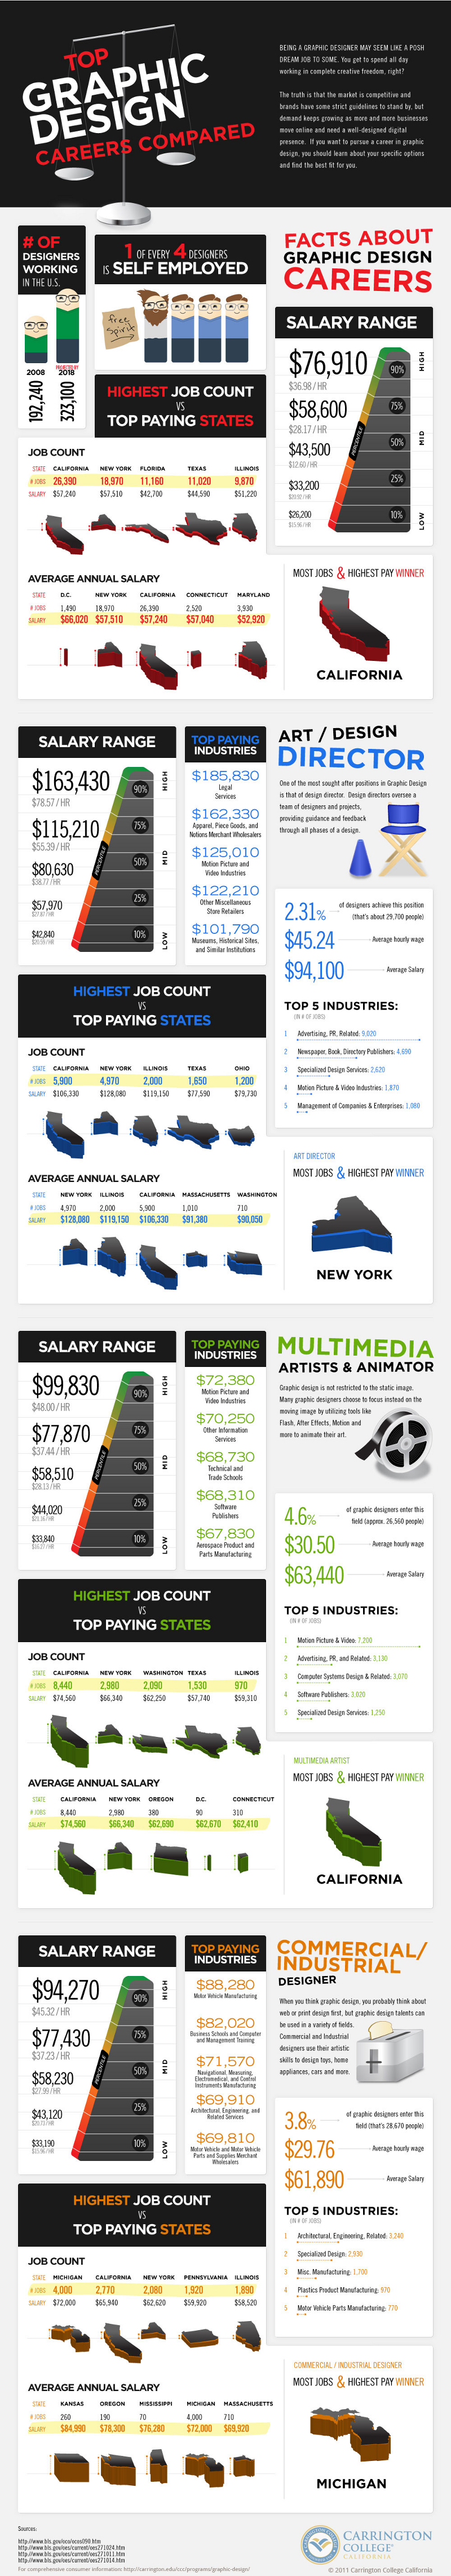 Graphic Design Career Facts